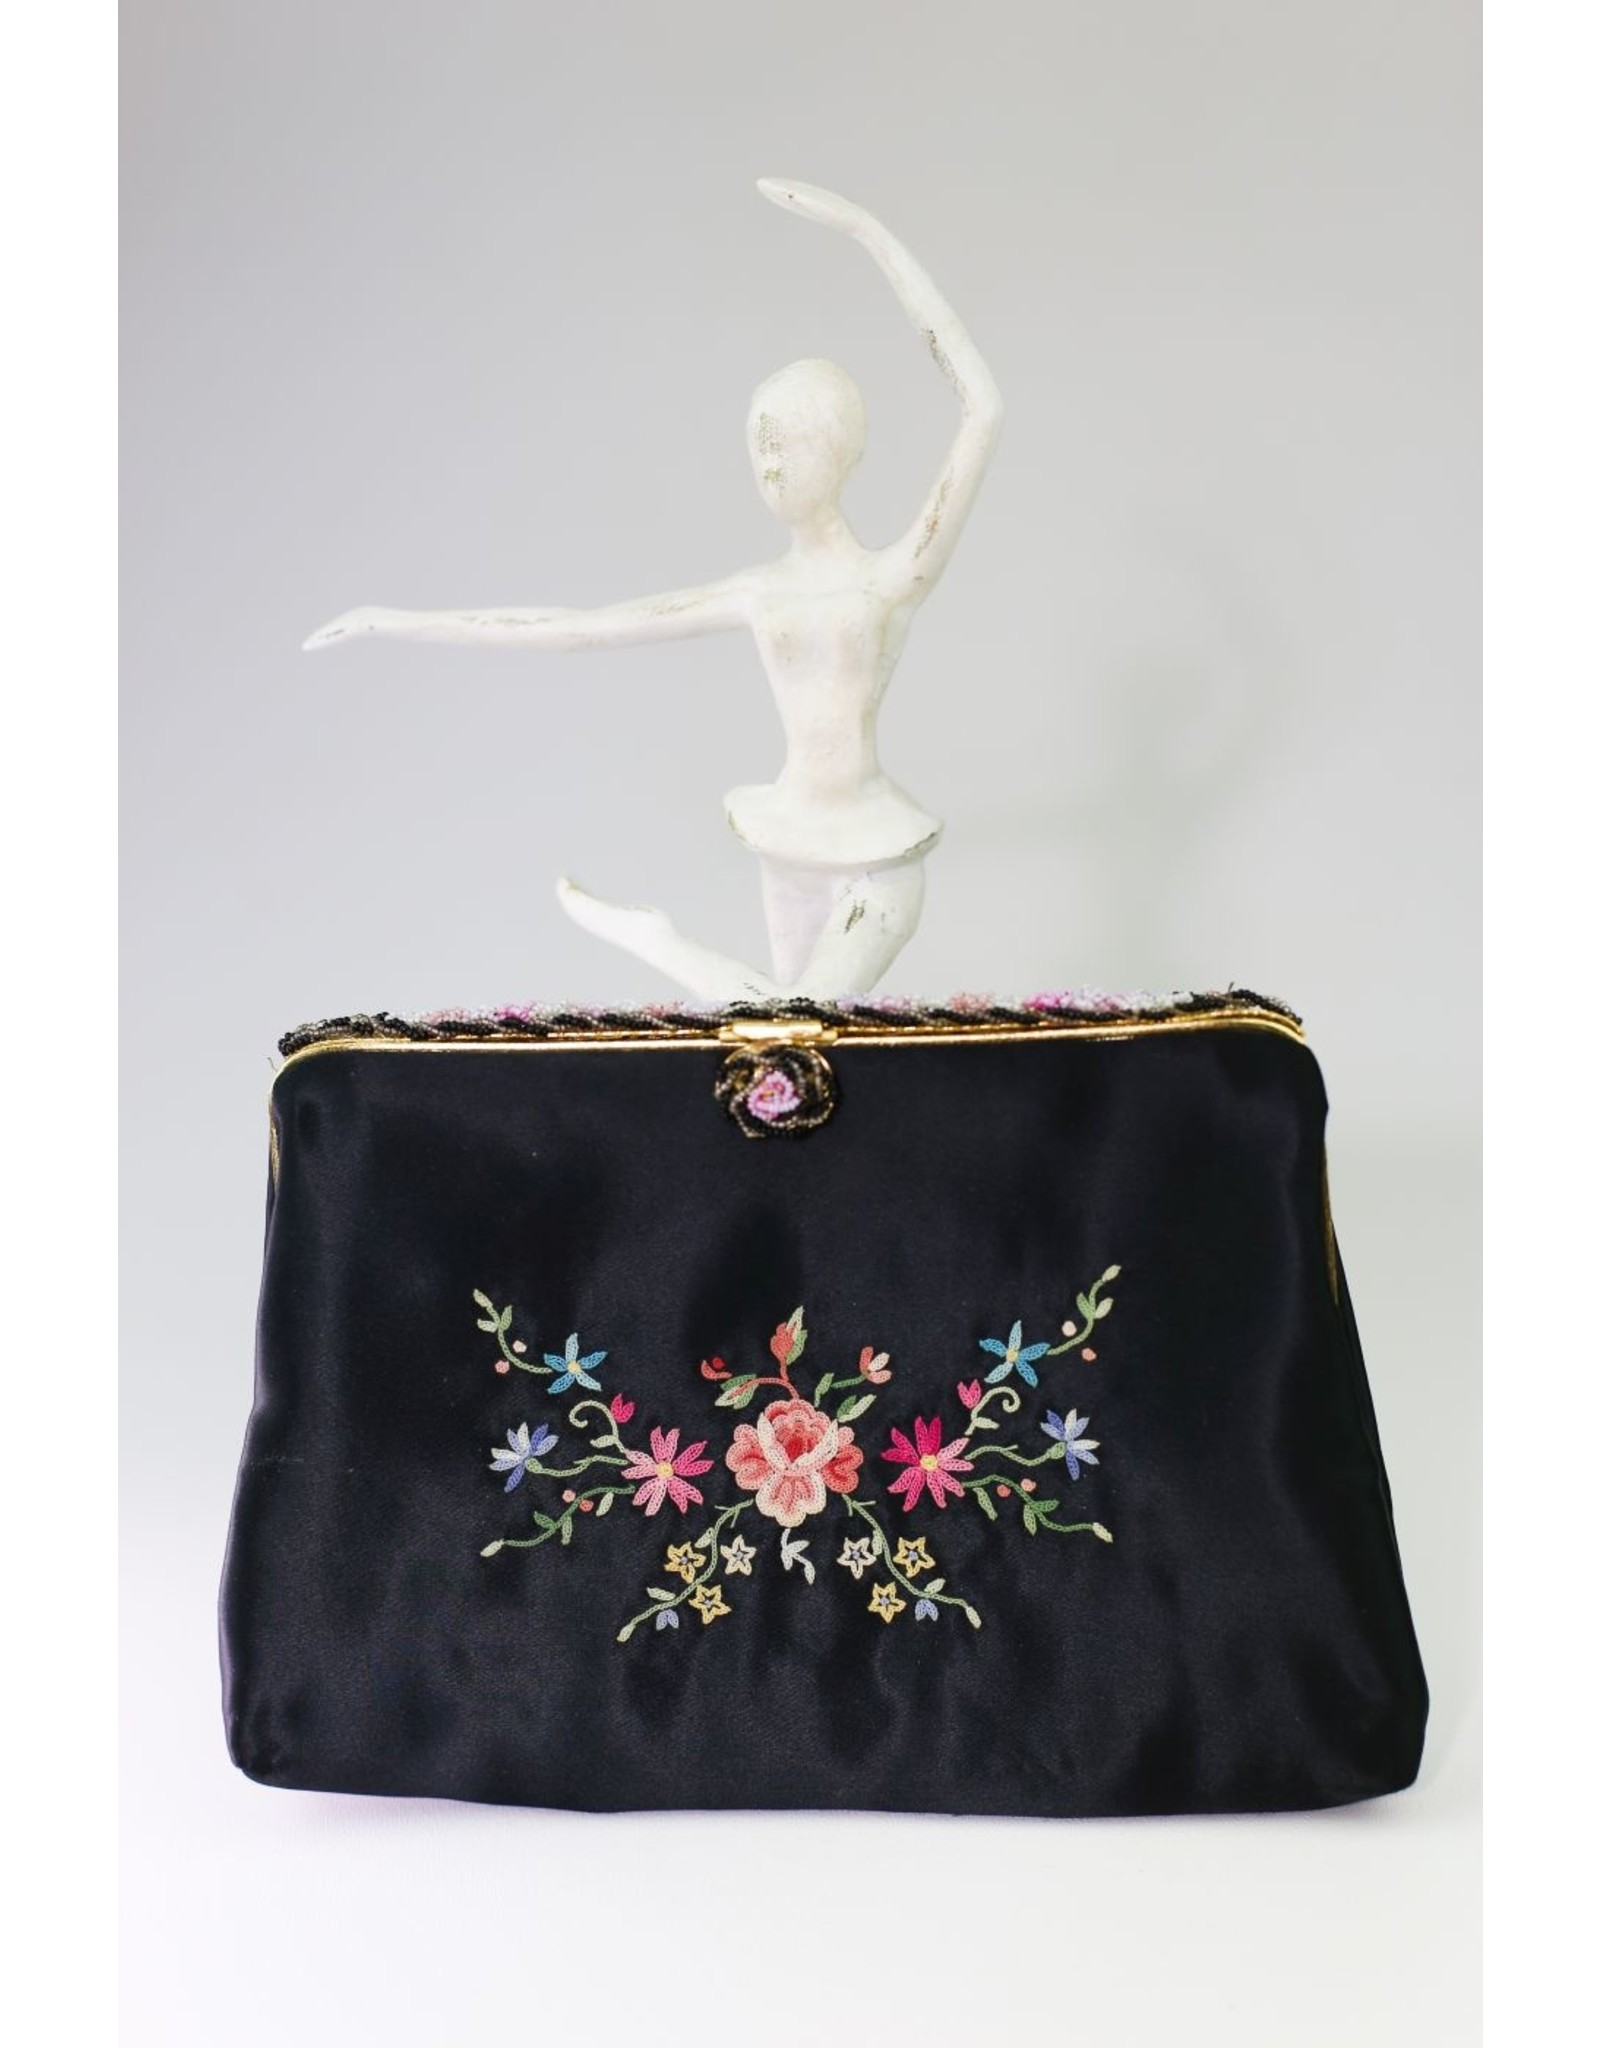 1940's Black Satin Clutch